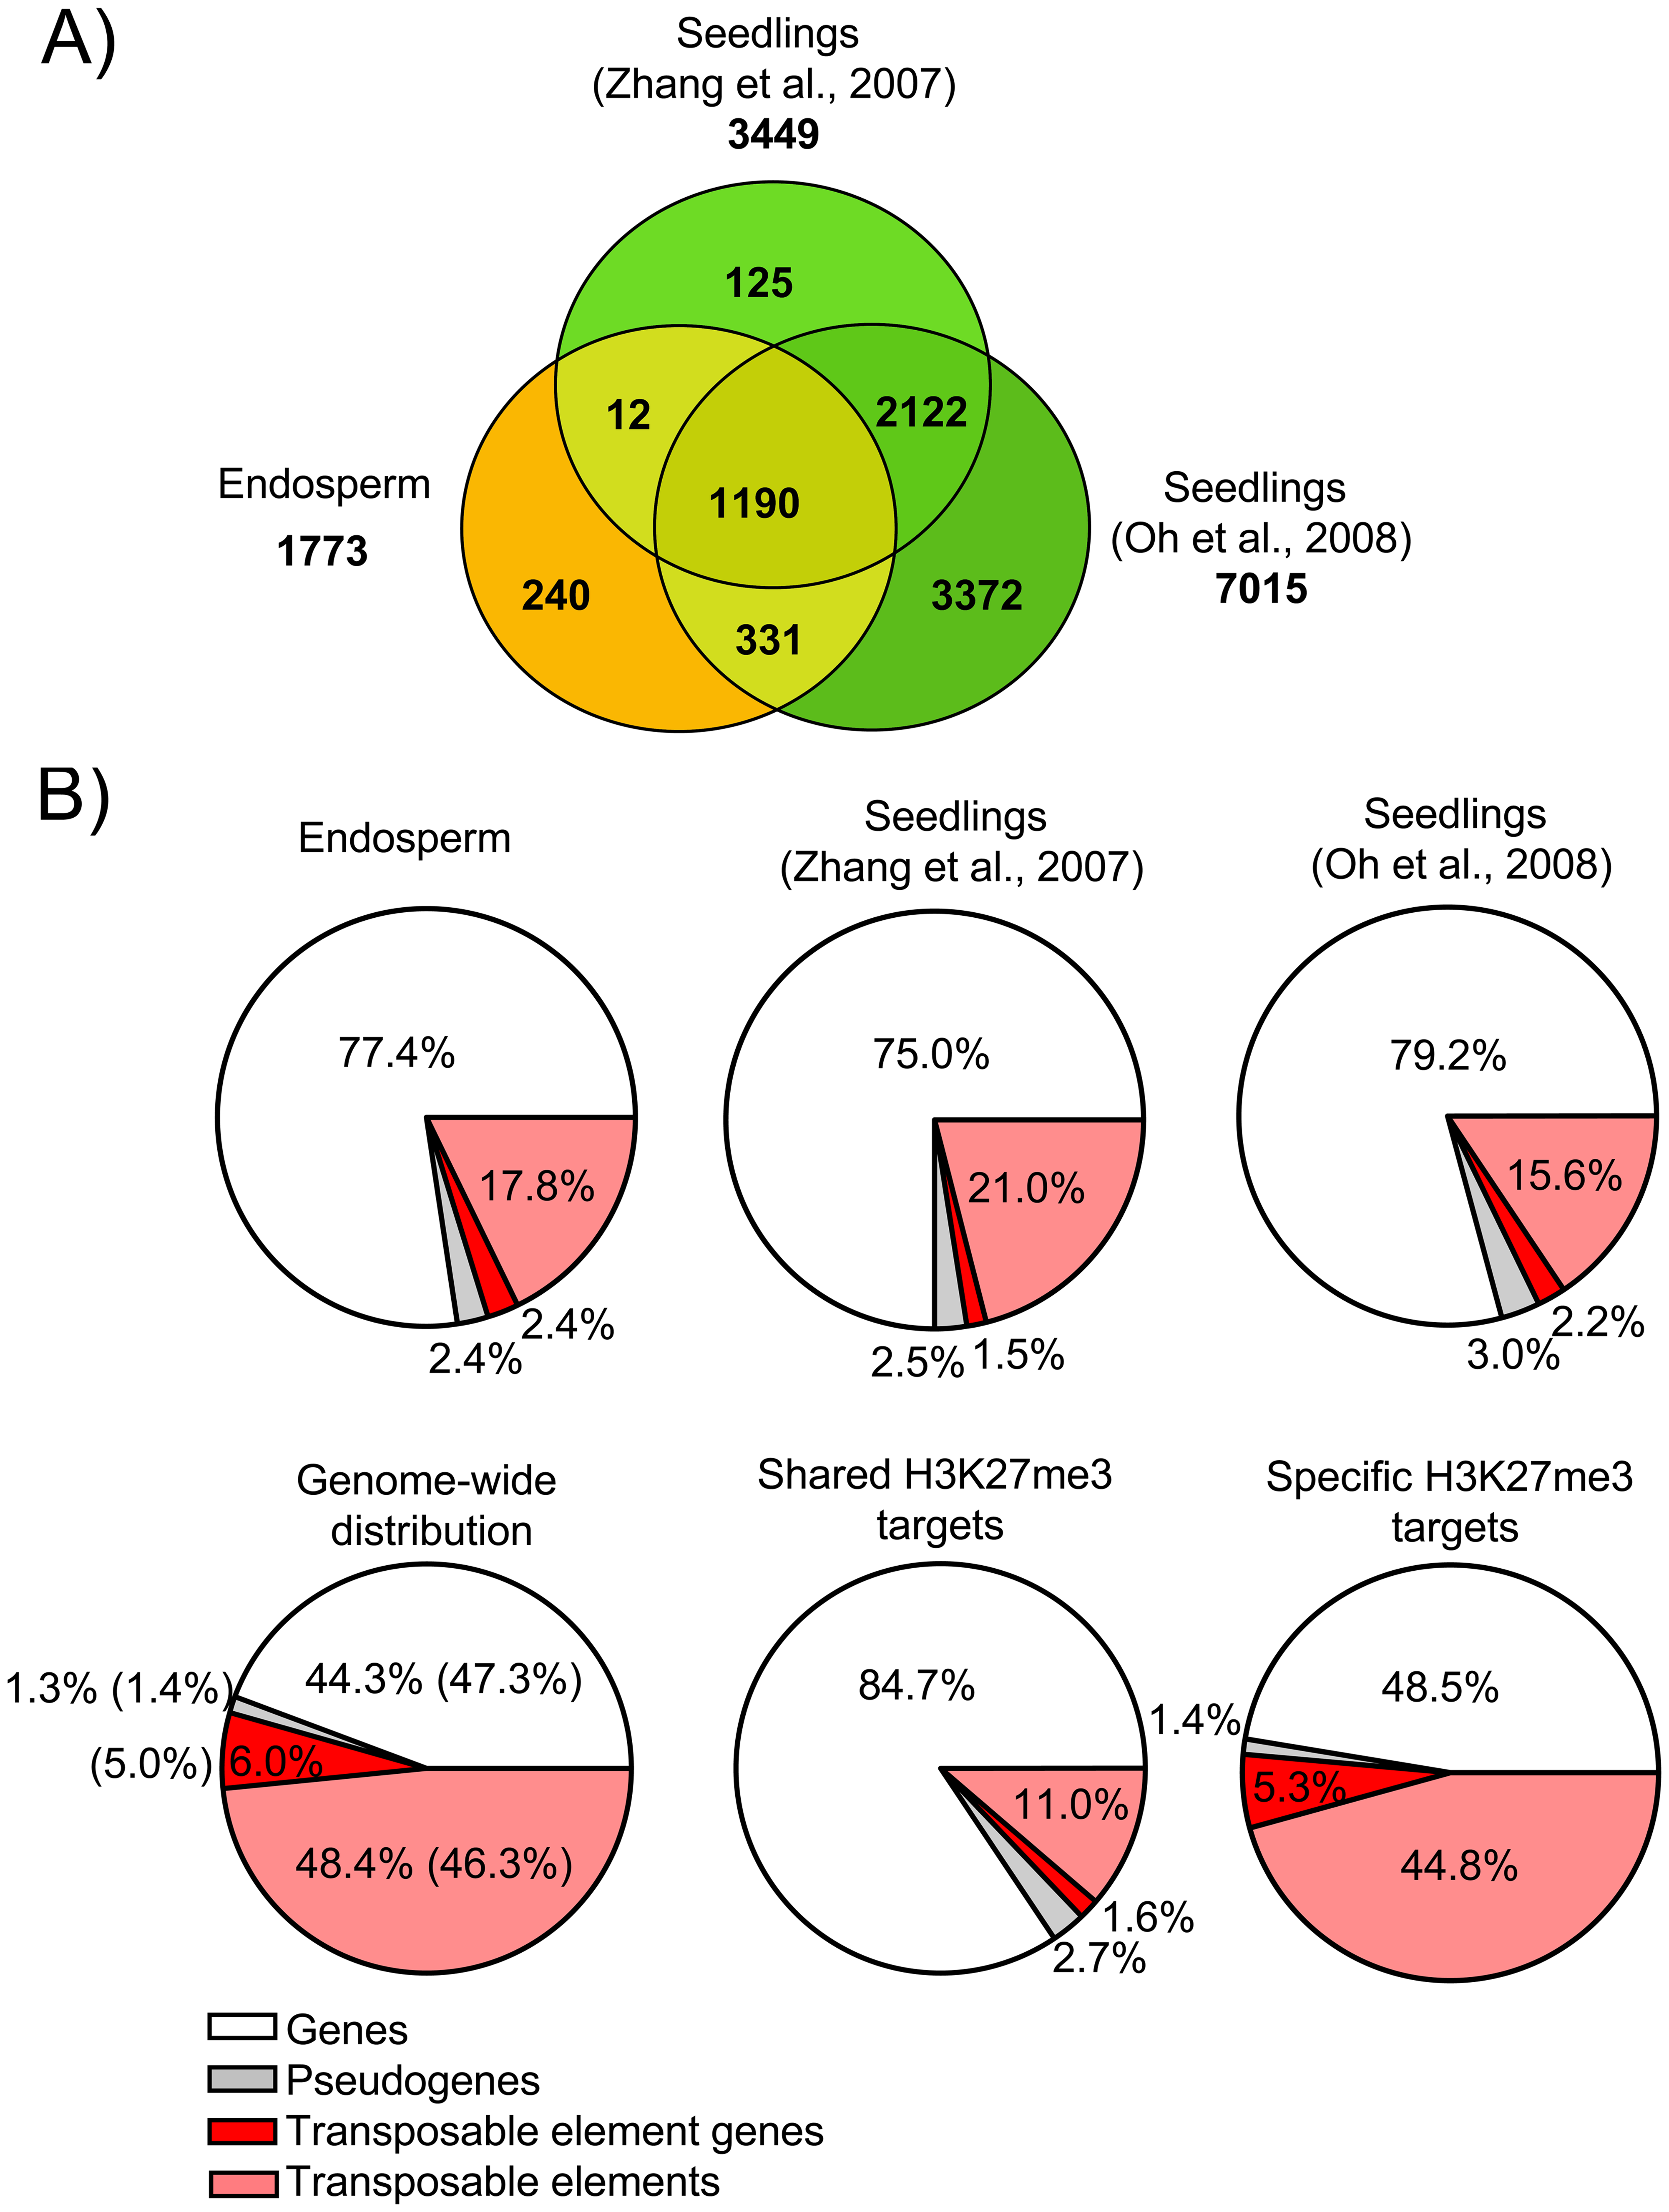 Characteristics of H3K27me3 Target Genes in the Endosperm.